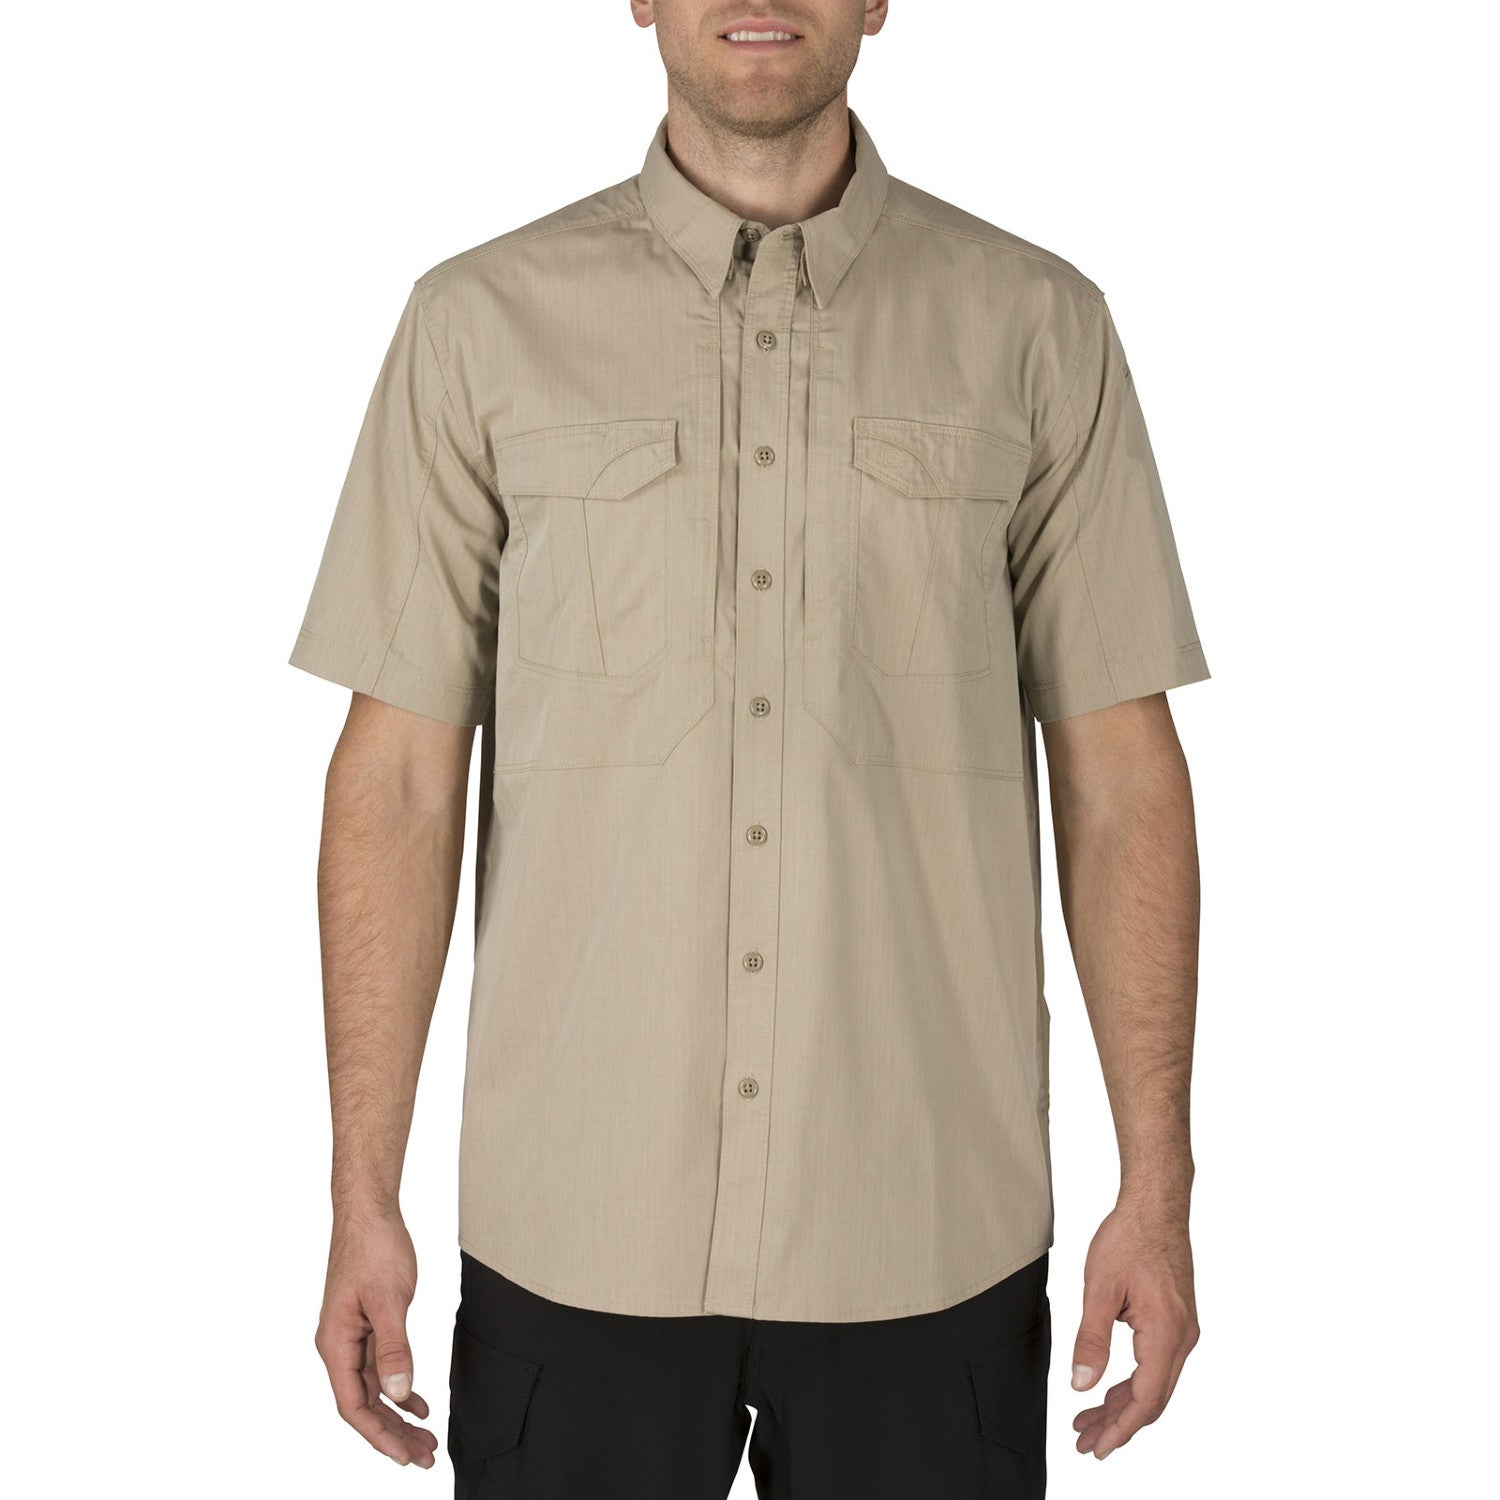 5.11 Tactical Stryke Short Sleeve T-Shirt